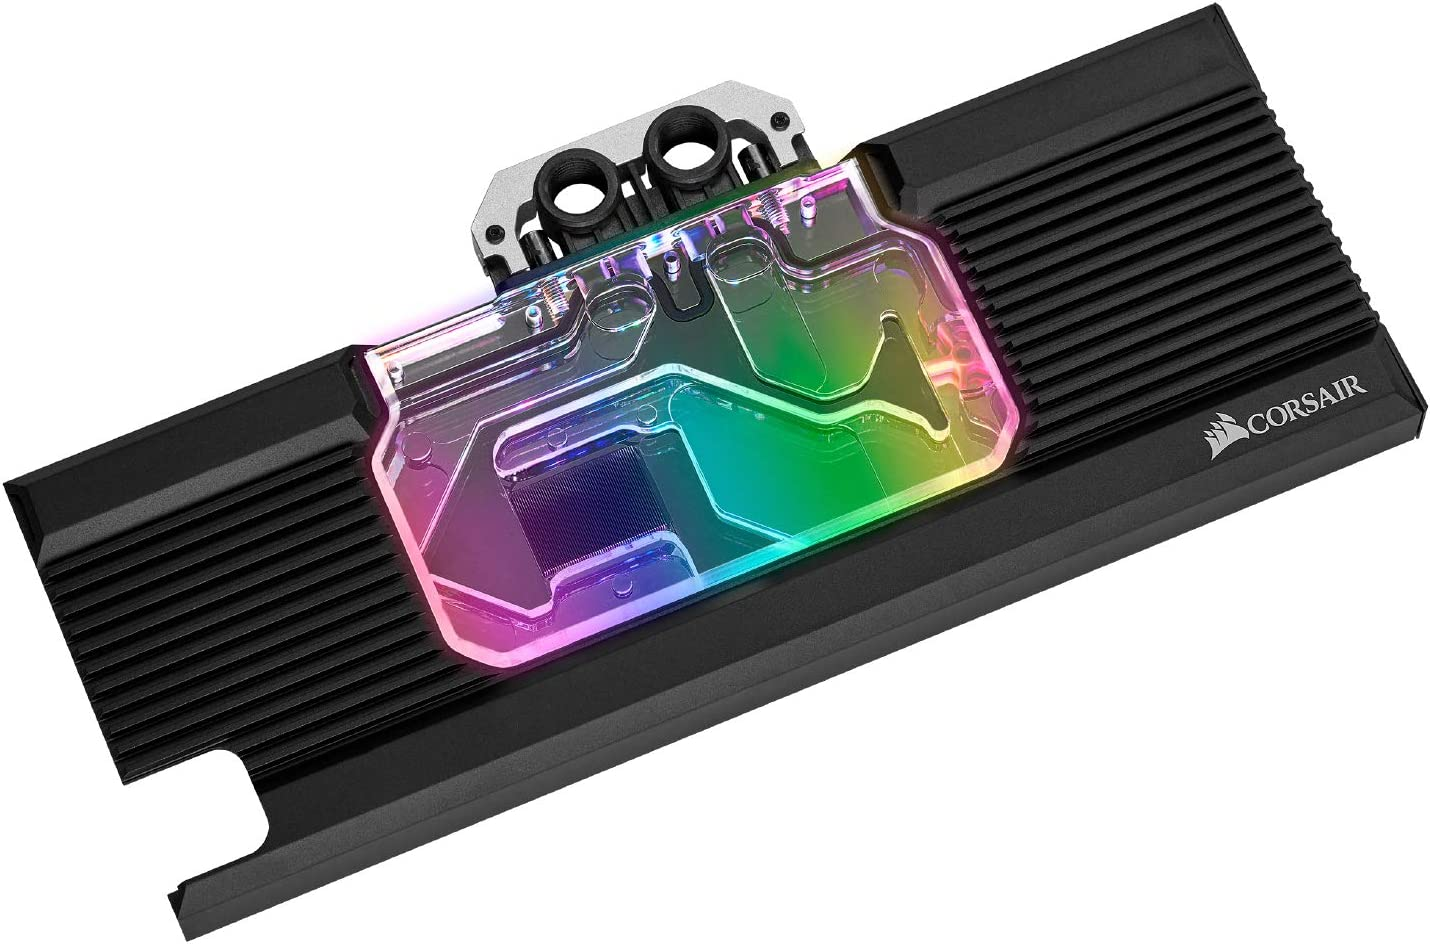 Corsair Hydro X Series, XG7 RGB GPU Water Block, 20-Series, GeForce RTX 2080 Ti Reference